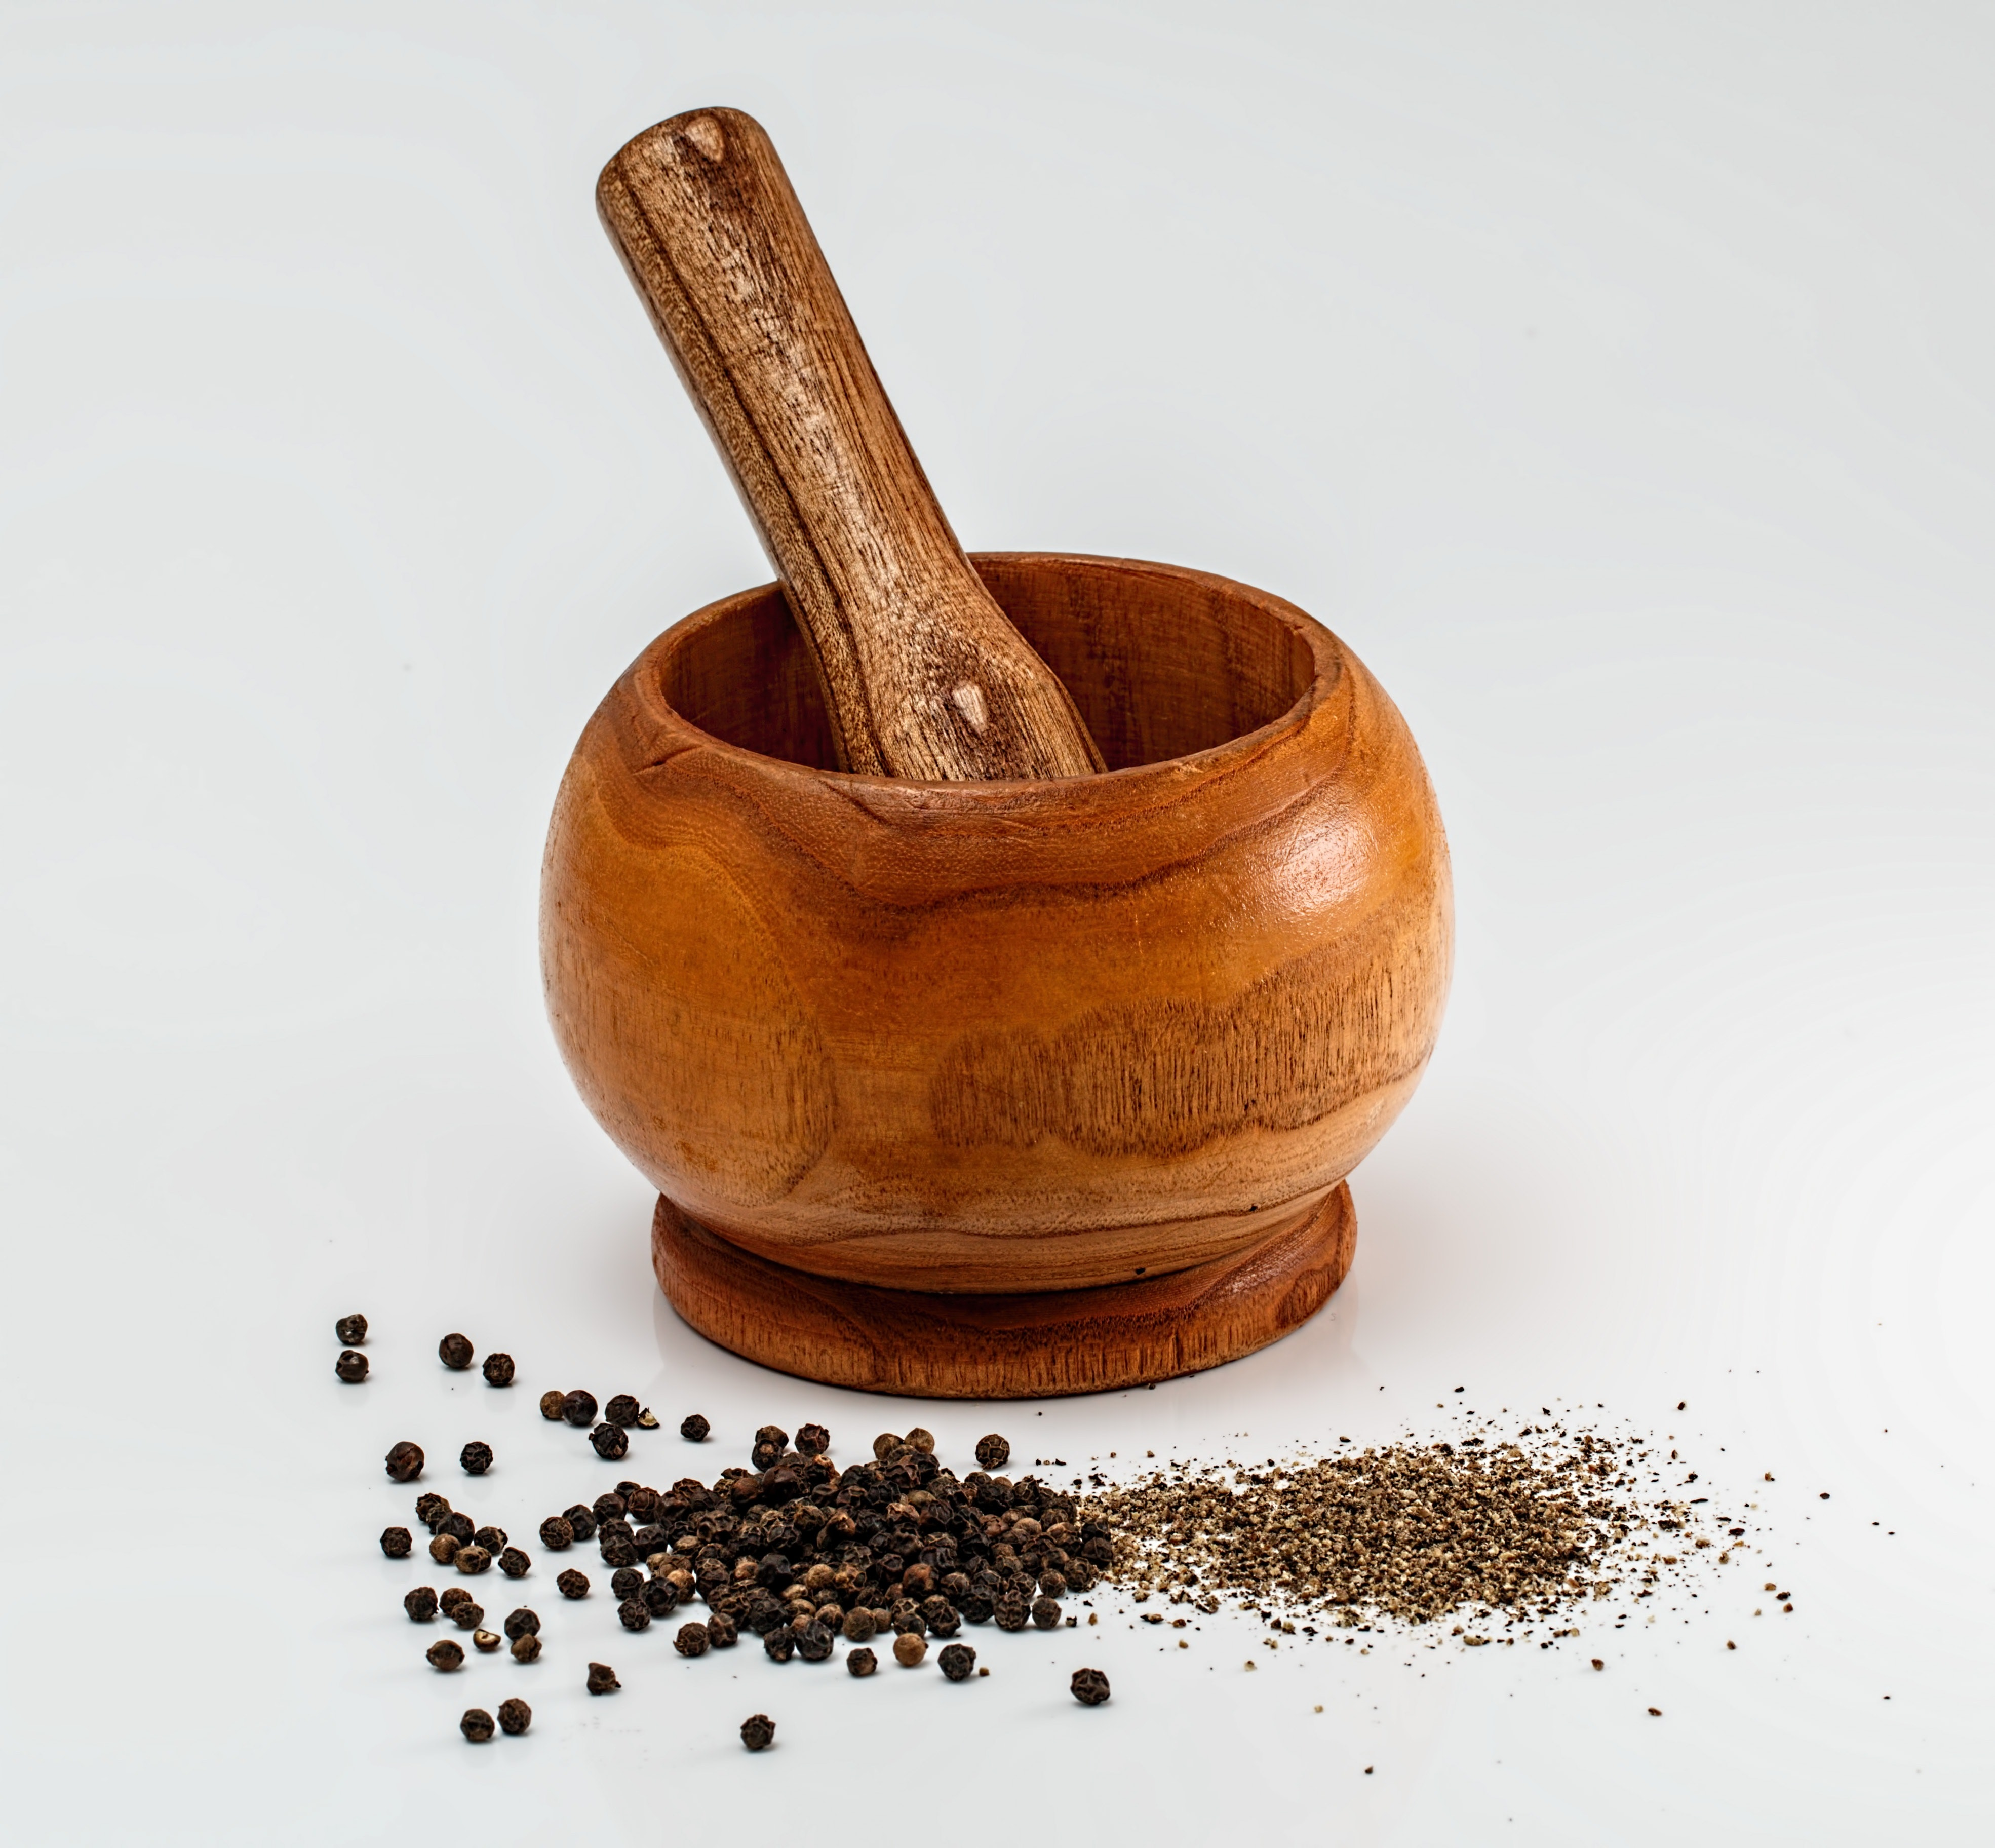 crushed black pepper in a bowl can be used as a natural remedy to gray hair